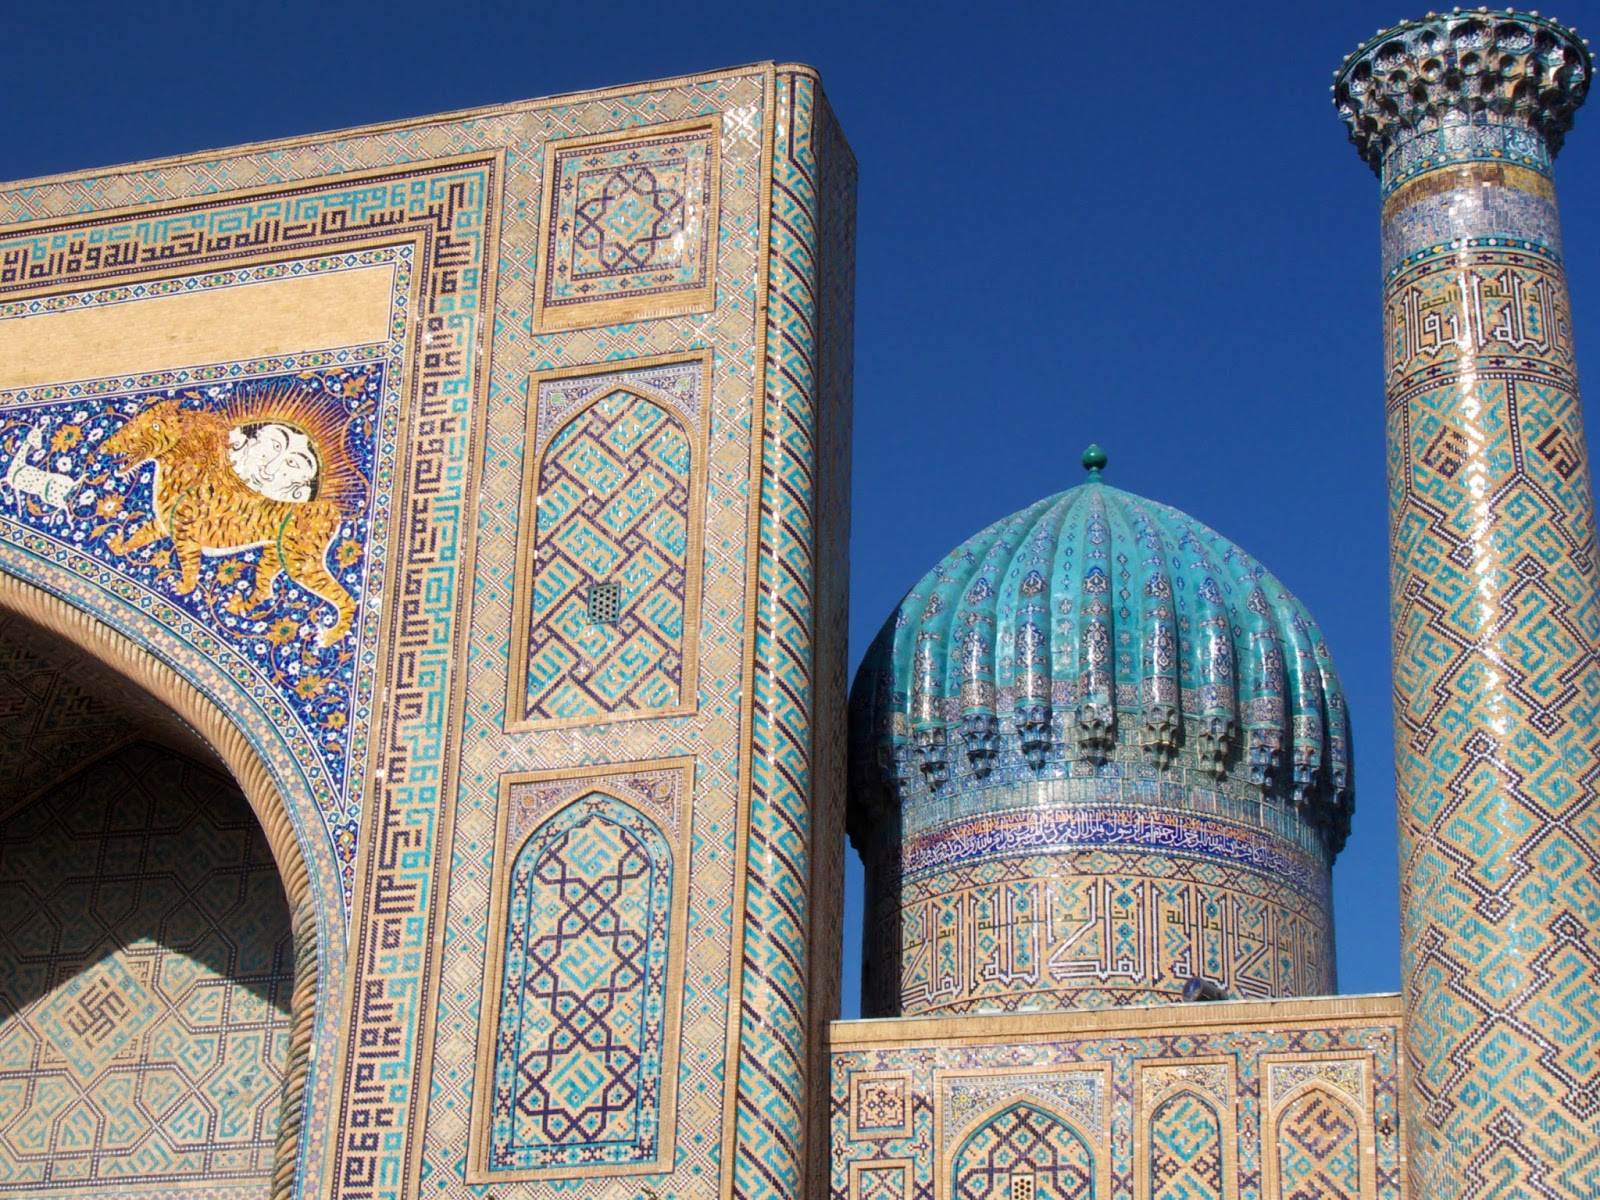 Registan Samarkand, The Registan, Samarkand ~ Civil Scholar